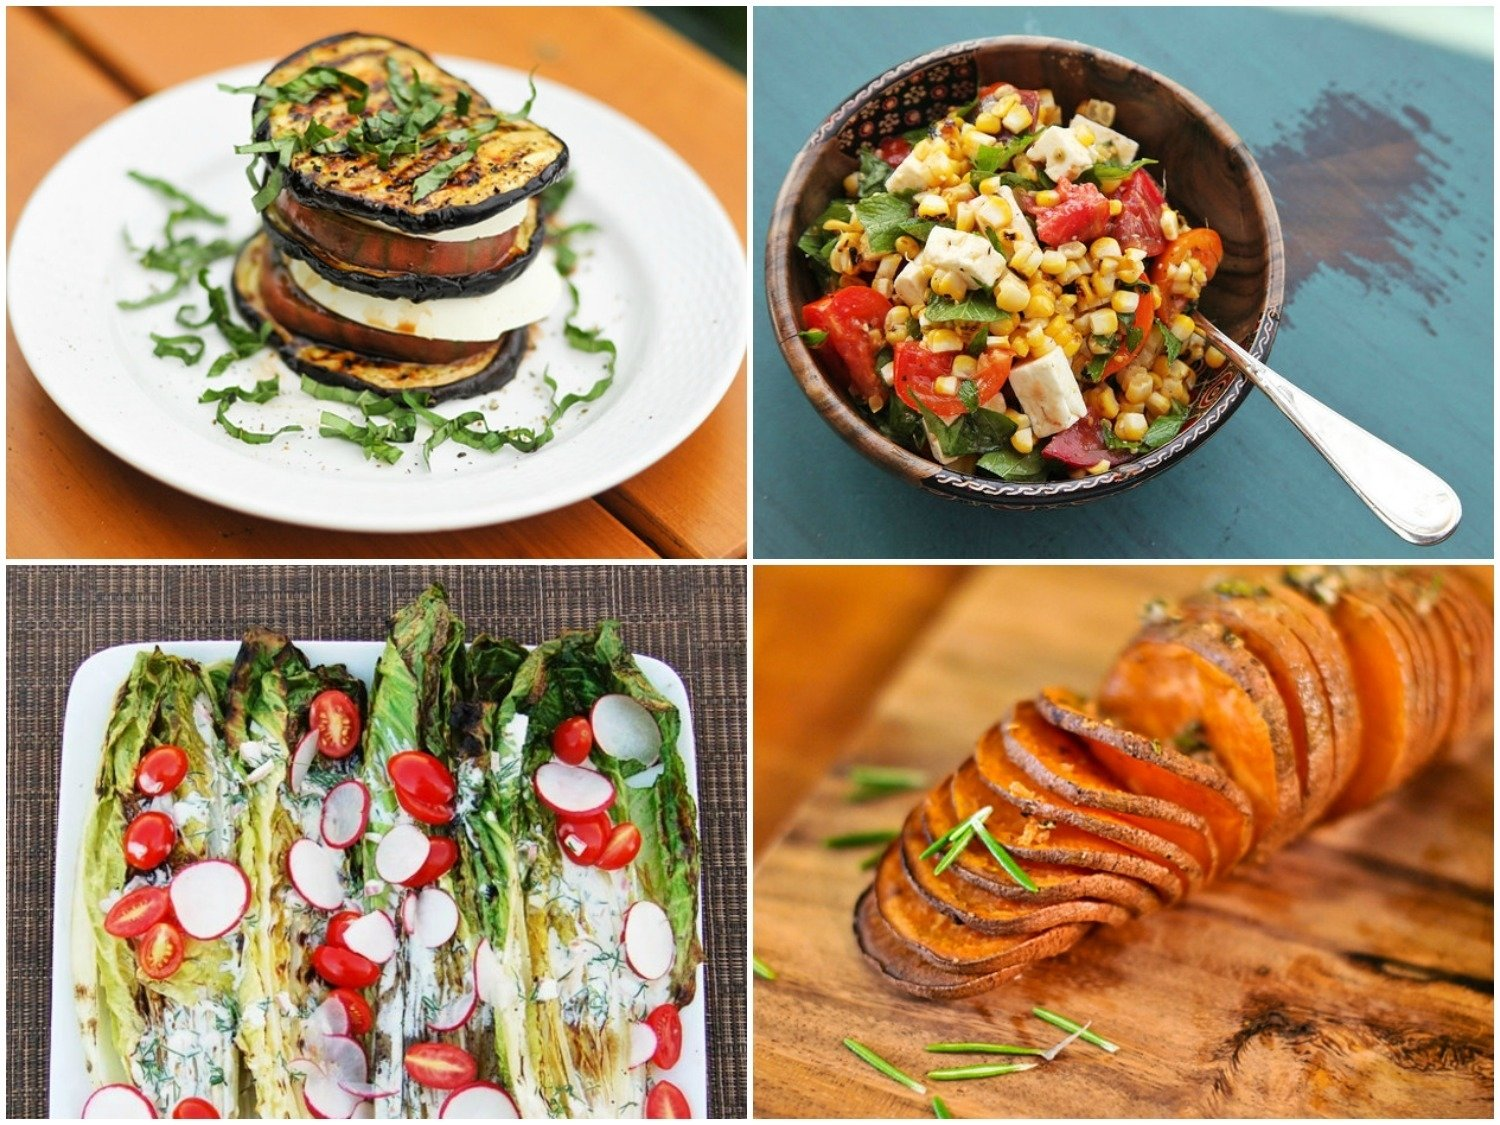 18 grilled vegetable recipes for your memorial day cookout | serious